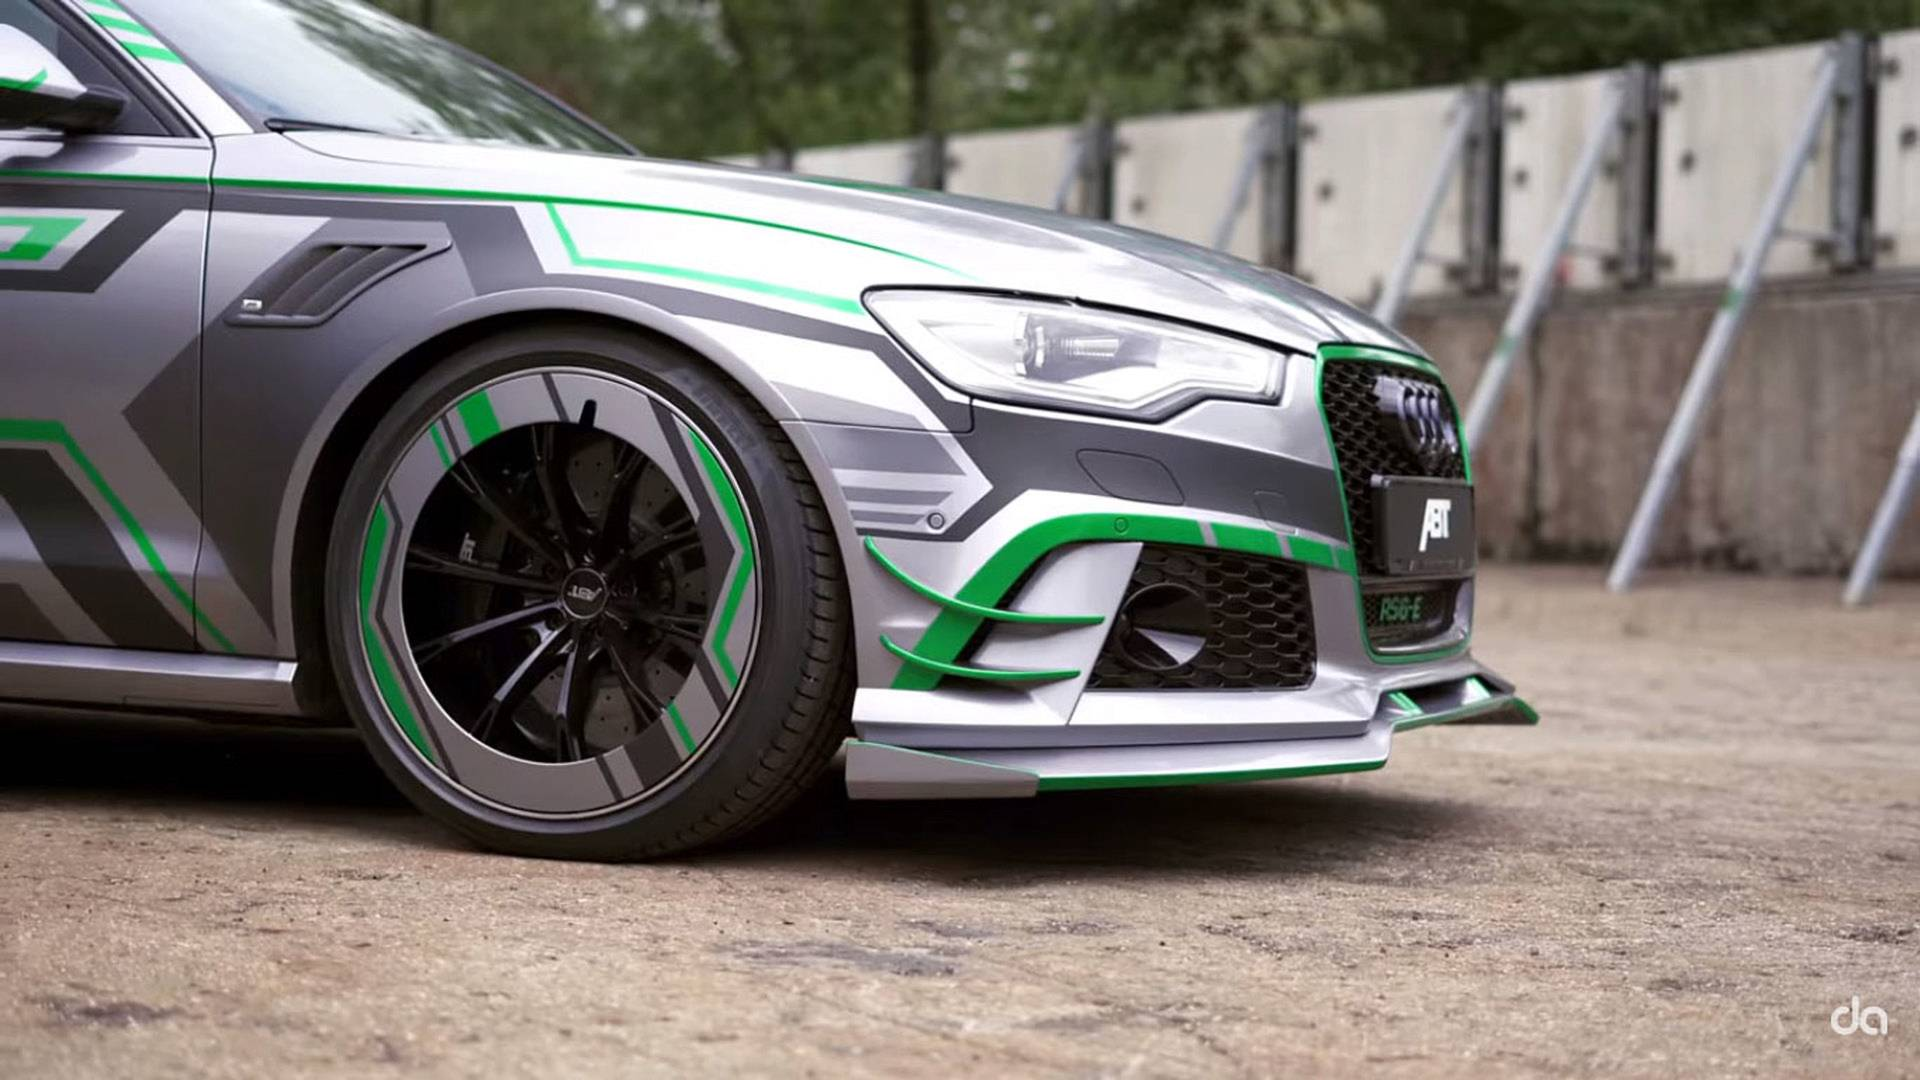 The Rs6 Avant Is One Of Most Capable Wagons In World Able To Take Cat Vet Faster Than It Can Puke Out A Hairball So How Does Audi